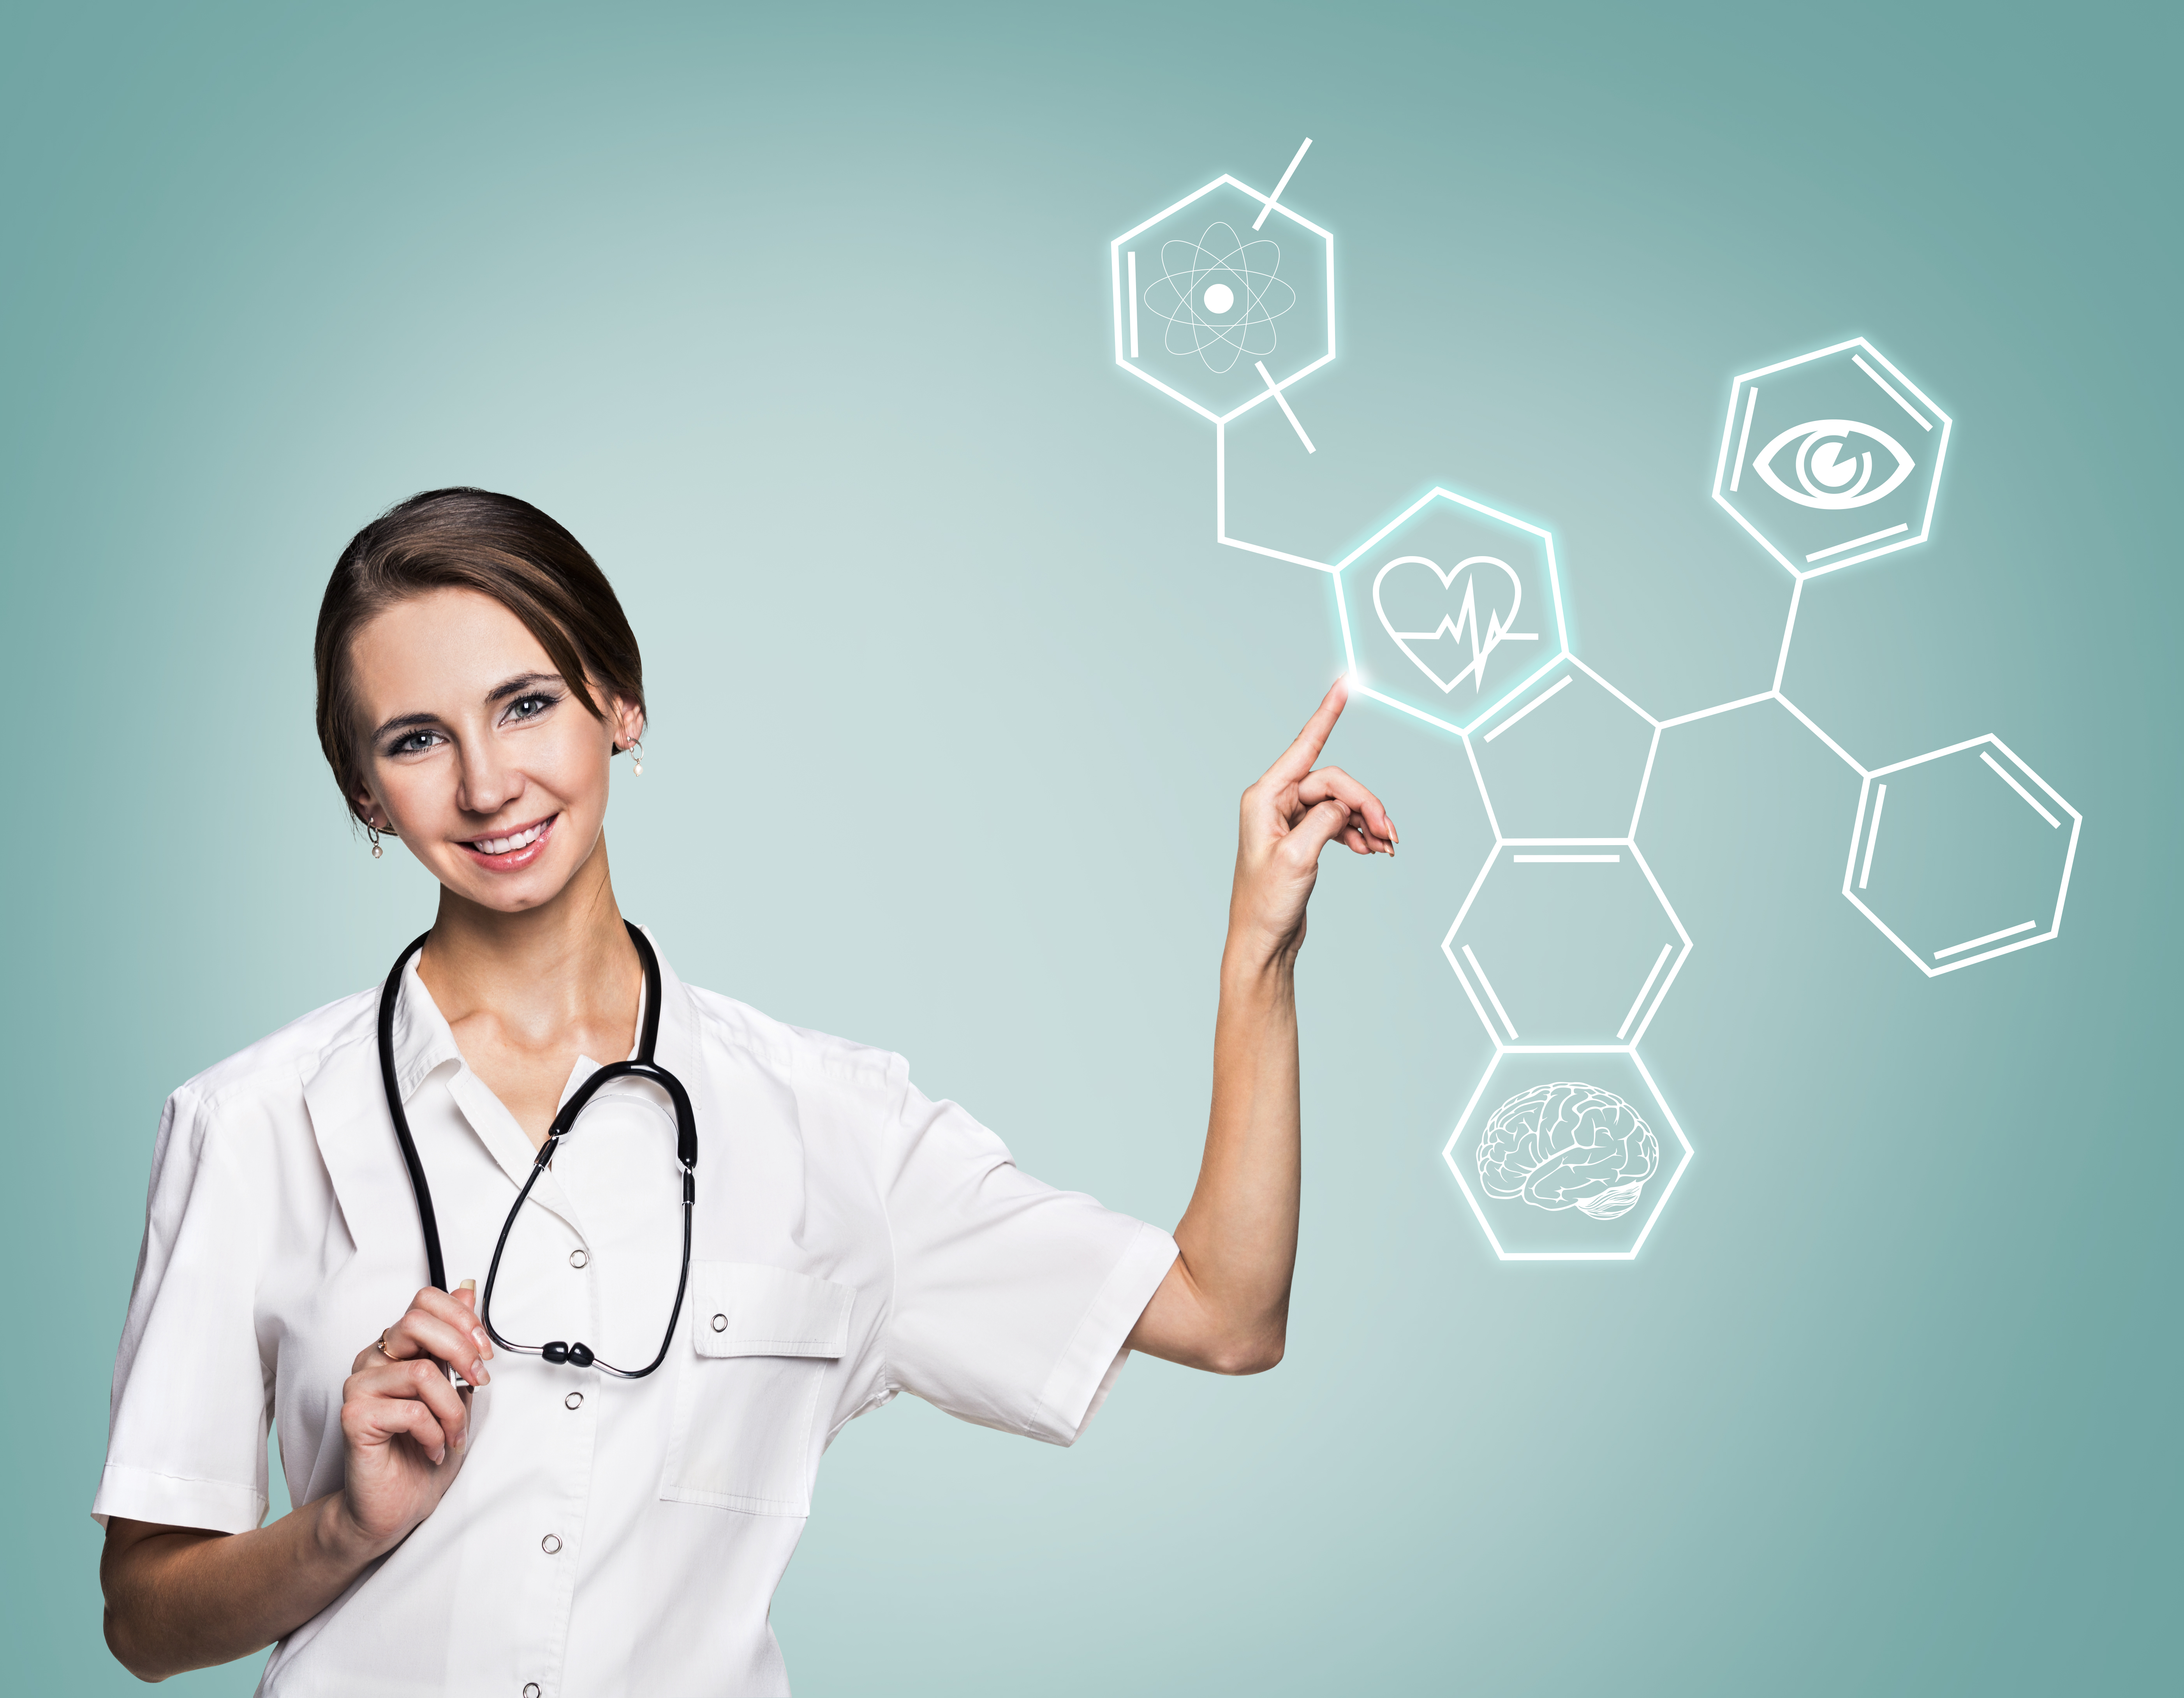 Find Travel Nursing Jobs in Virginia with Millenia Medical Staffing Call 888-686-6877